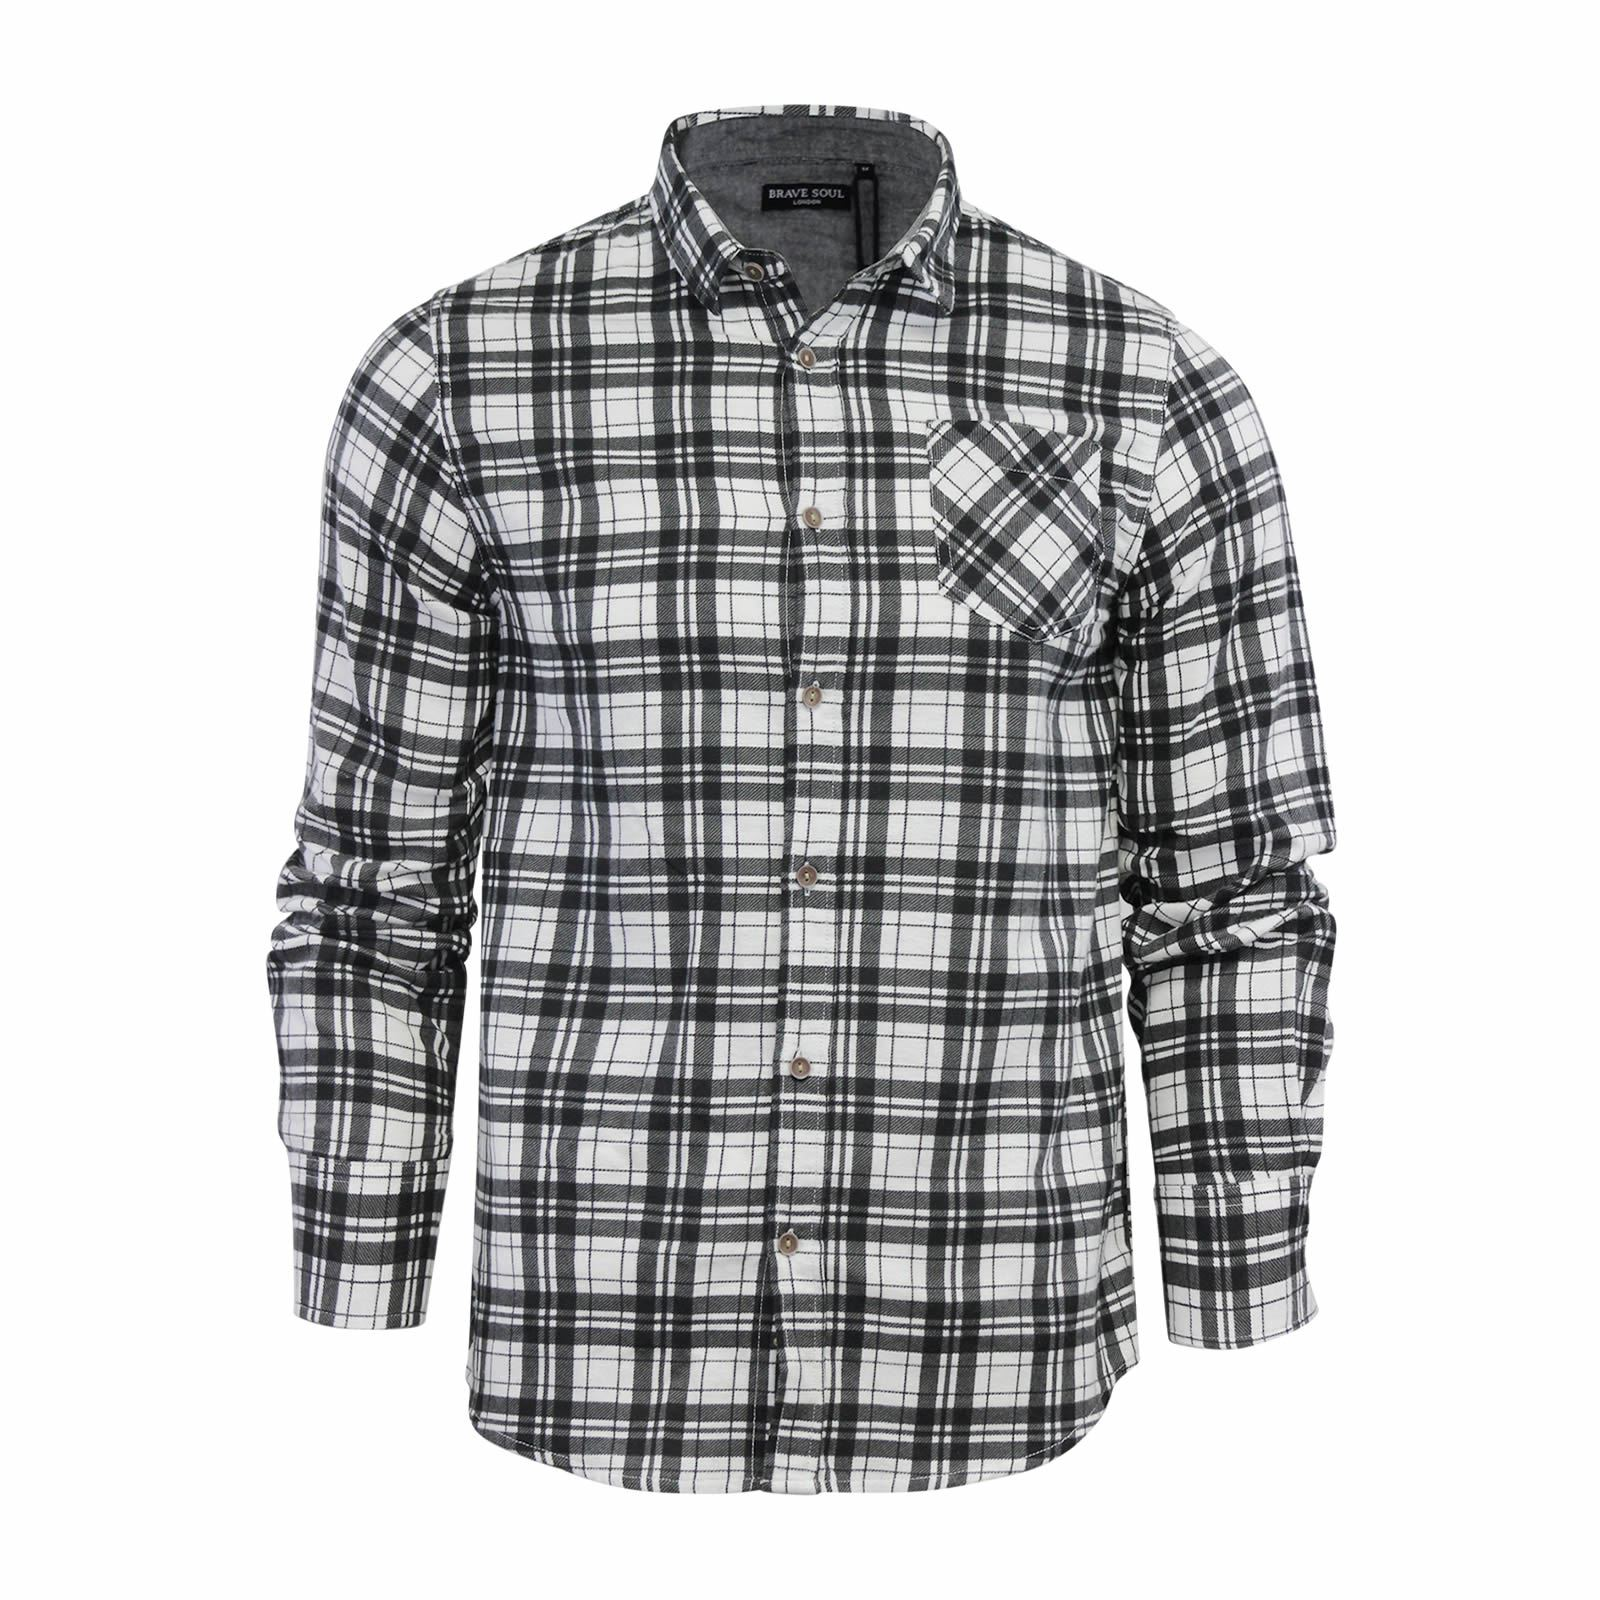 Brave-Soul-Mens-Check-Shirt-Flannel-Brushed-Cotton-Long-Sleeve-Casual-Top thumbnail 85